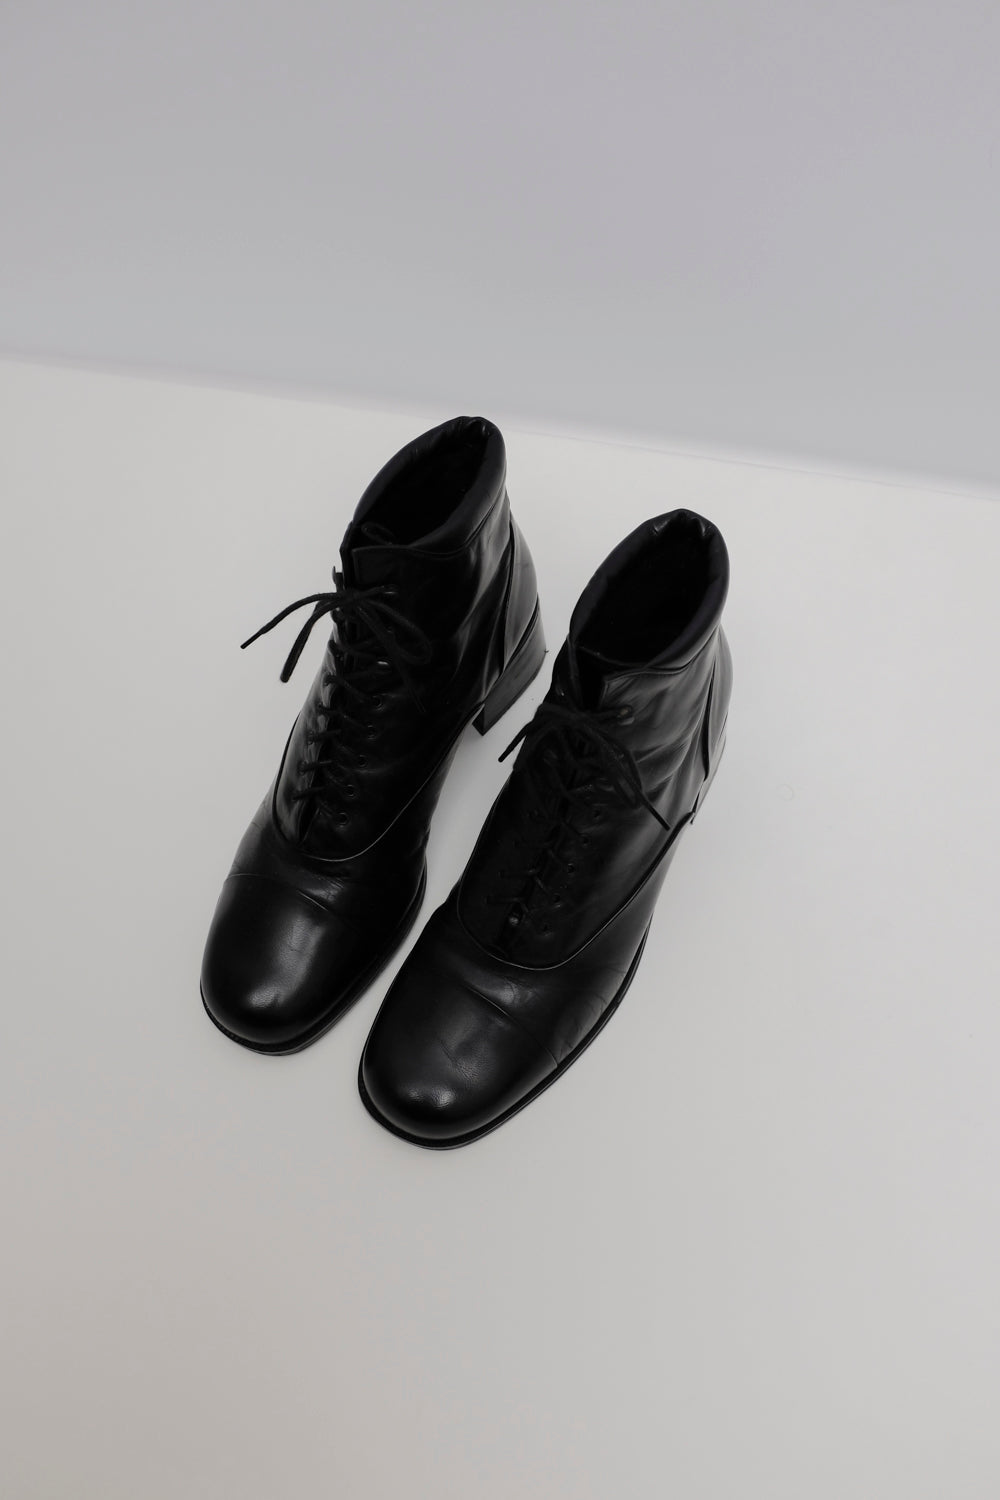 0017_BLACK WARM LEATHER LACE UP 38 BOOTS